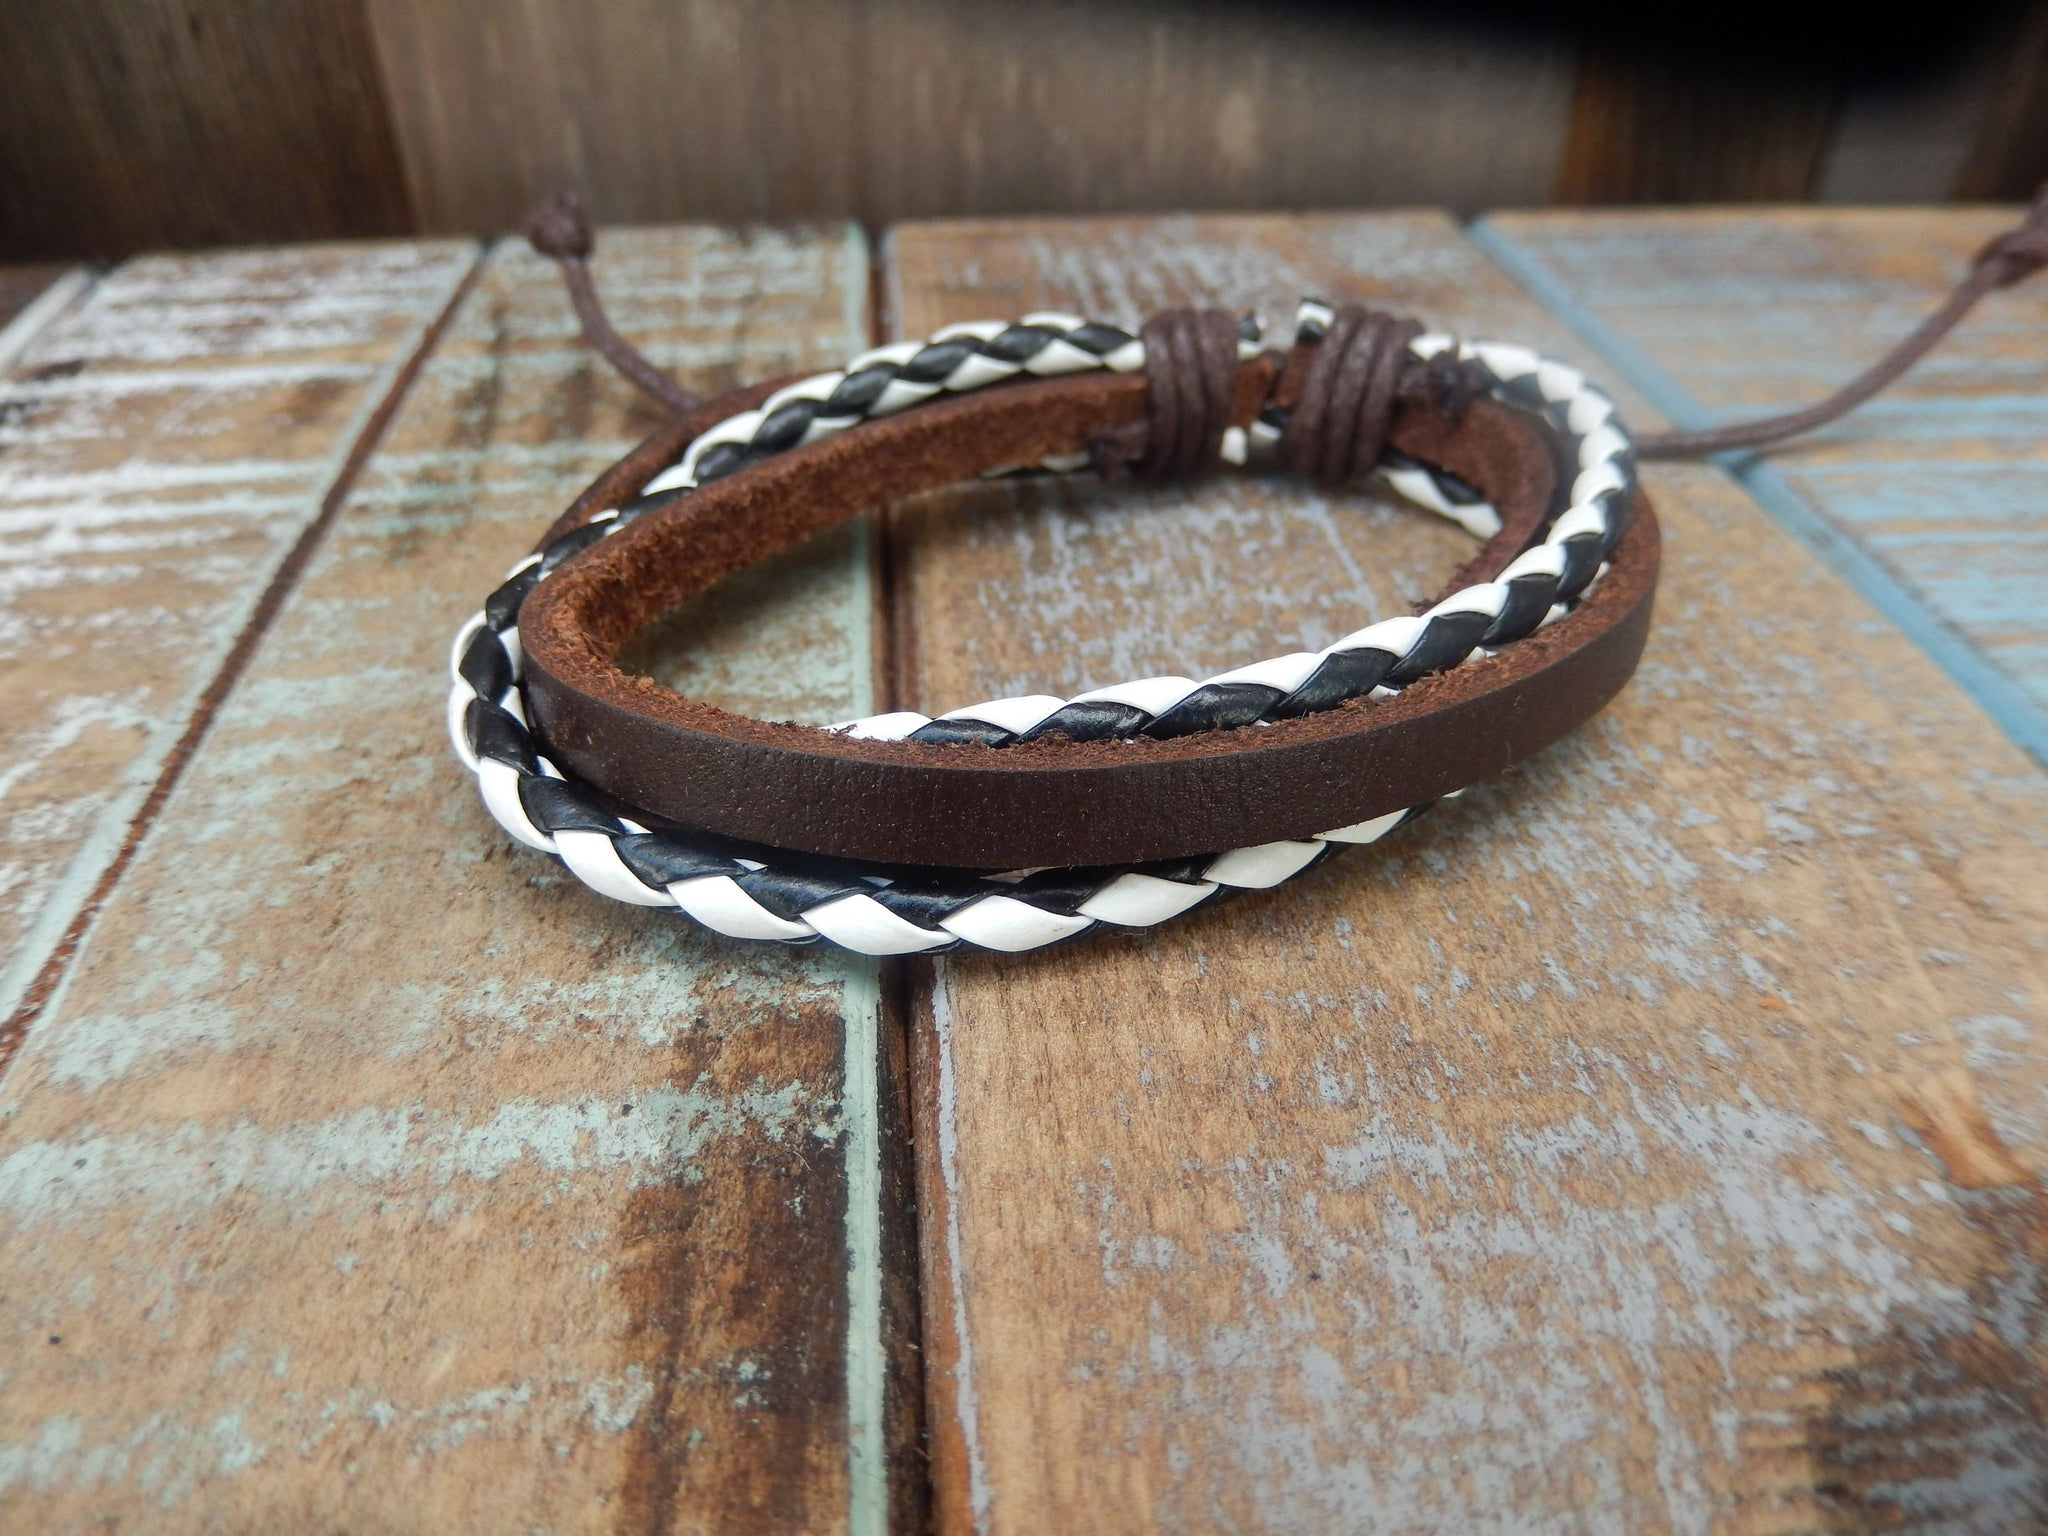 jaan-imports - Black/White and Brown/White Leather Bracelets - Khoobsurat Gift Shop - Bracelet